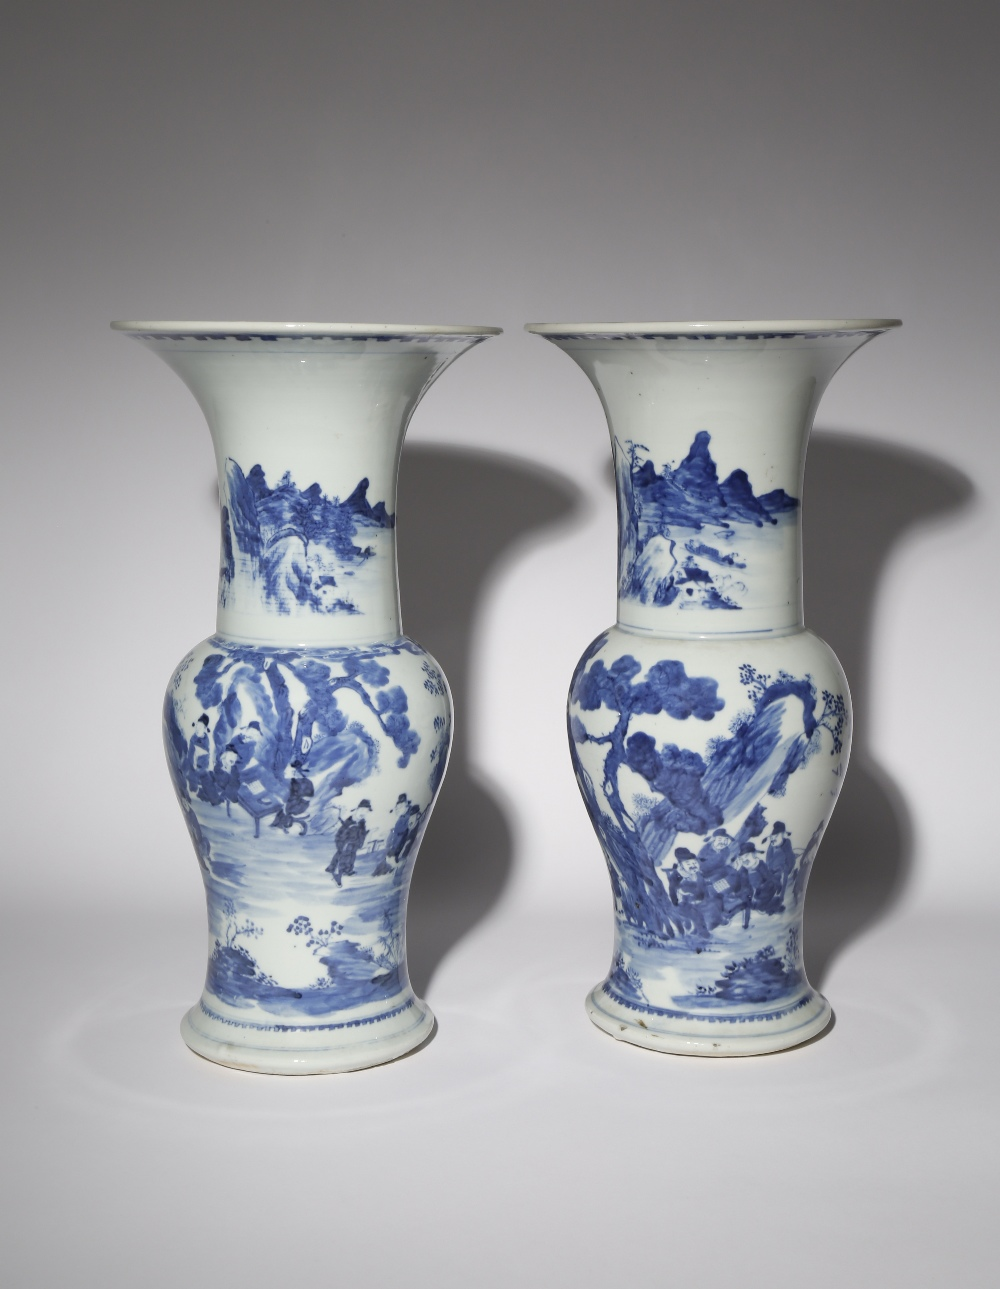 A NEAR PAIR OF CHINESE BLUE AND WHITE YEN YEN VASES 19TH CENTURY Each painted with a continuous